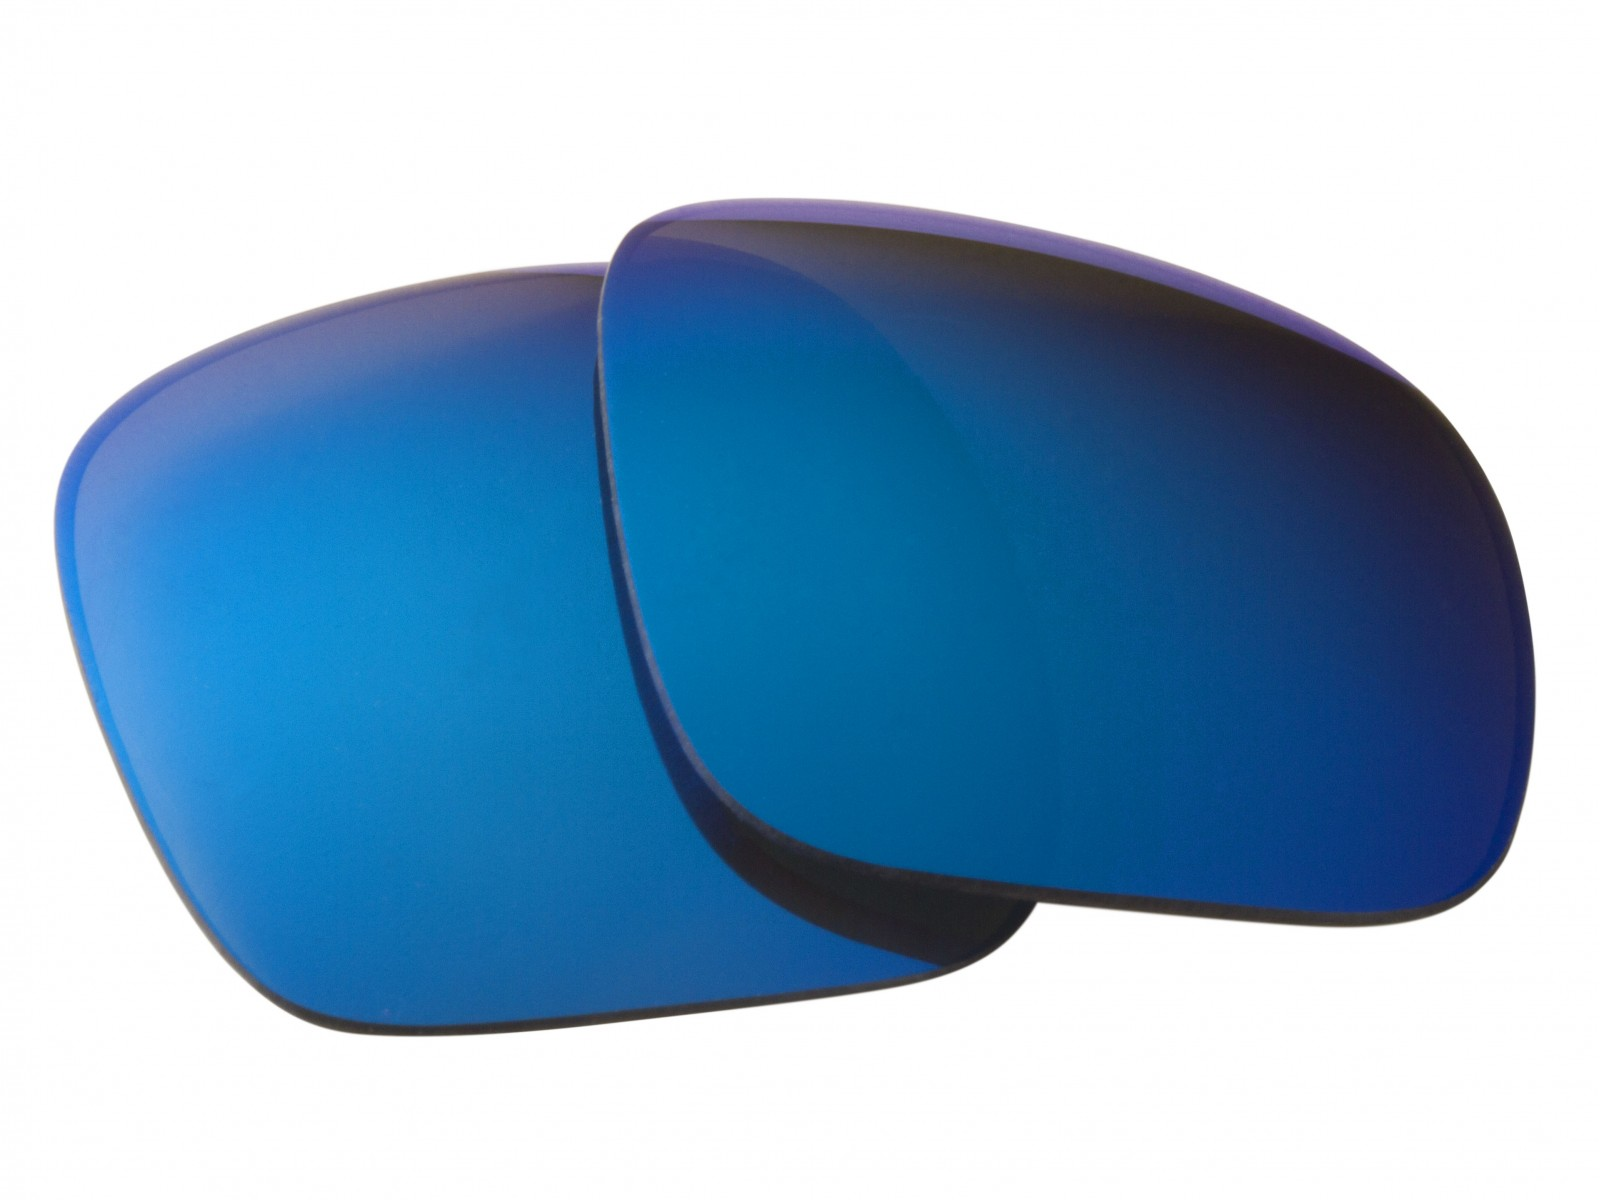 Zeiss Blue MCI pair of lenses for Swordfish sunglasses